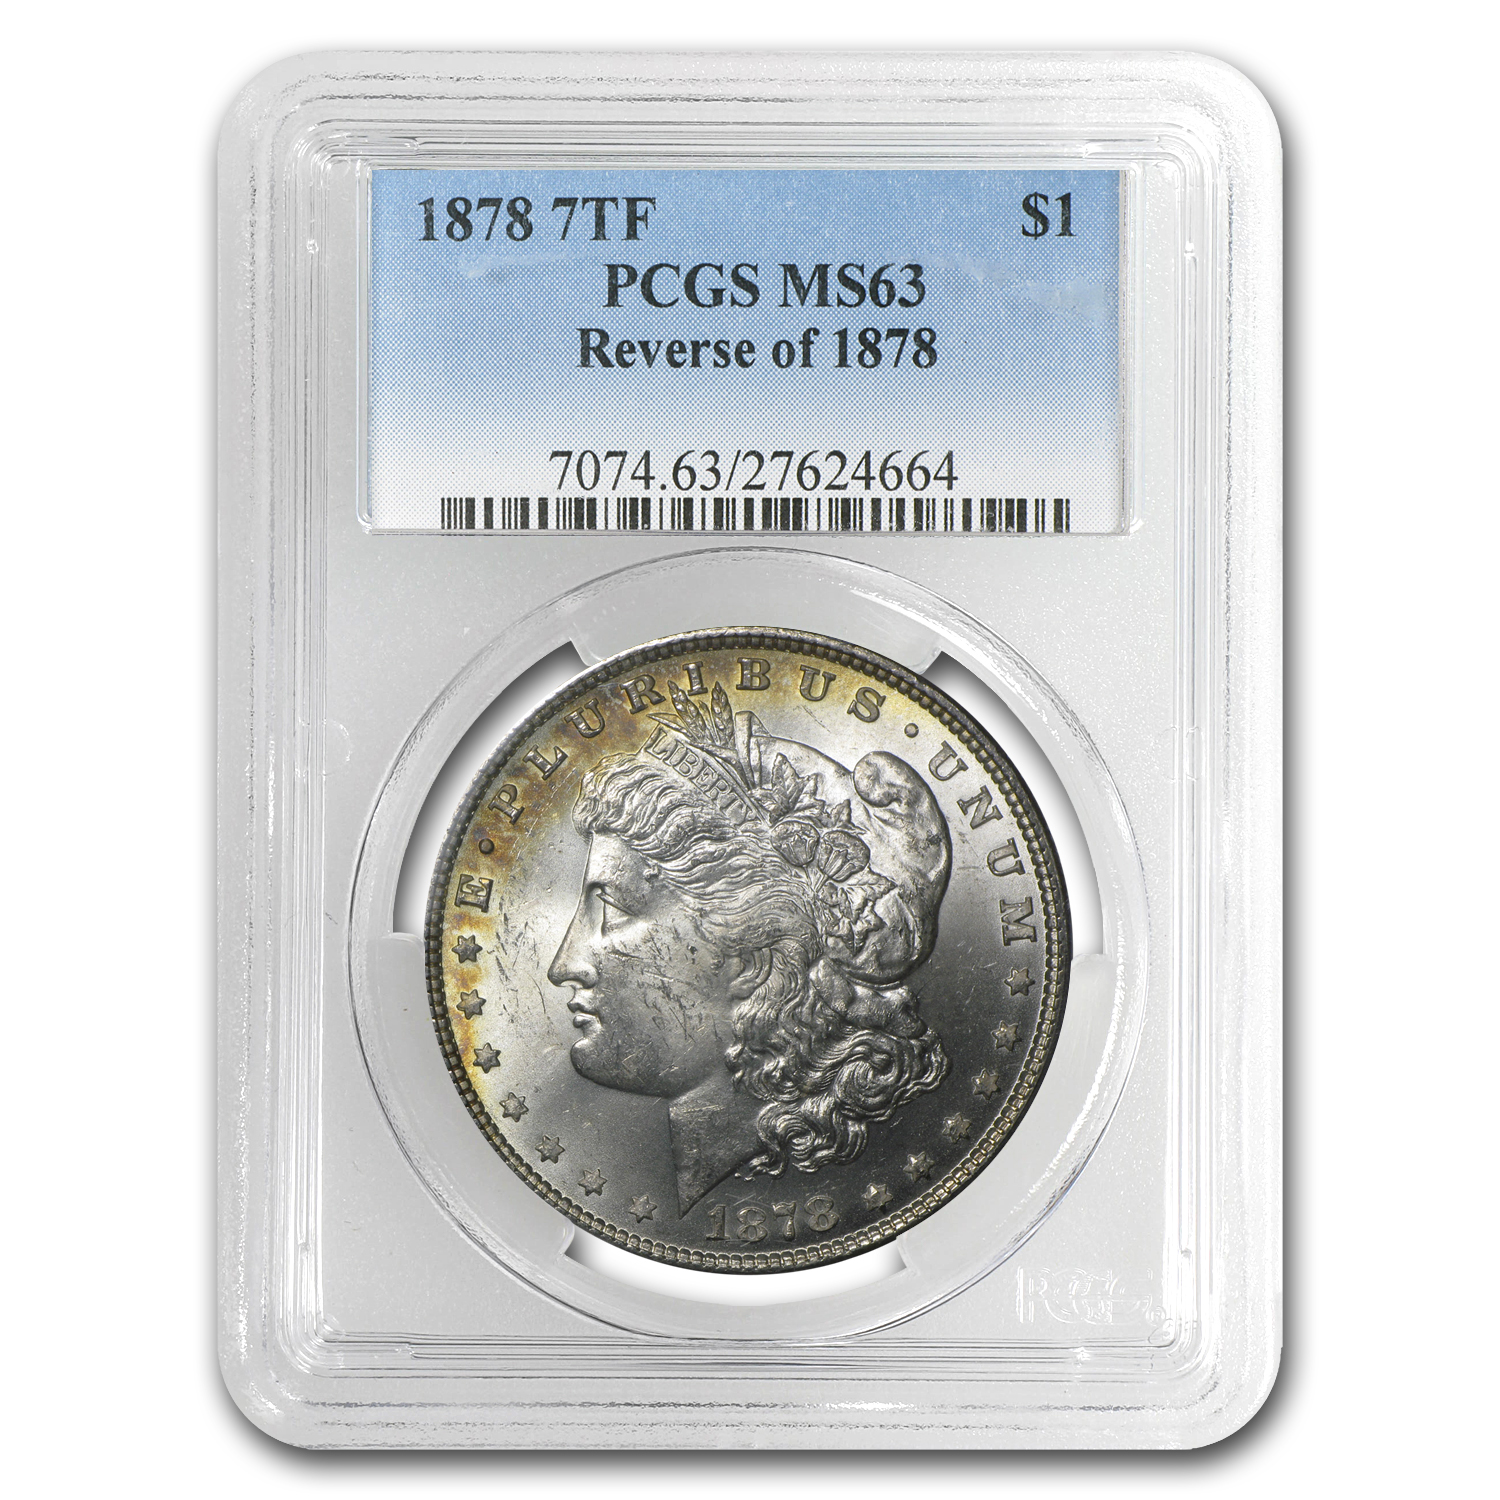 1878 Morgan Dollar 7 TF Rev of 78 MS-63 PCGS (Toned)